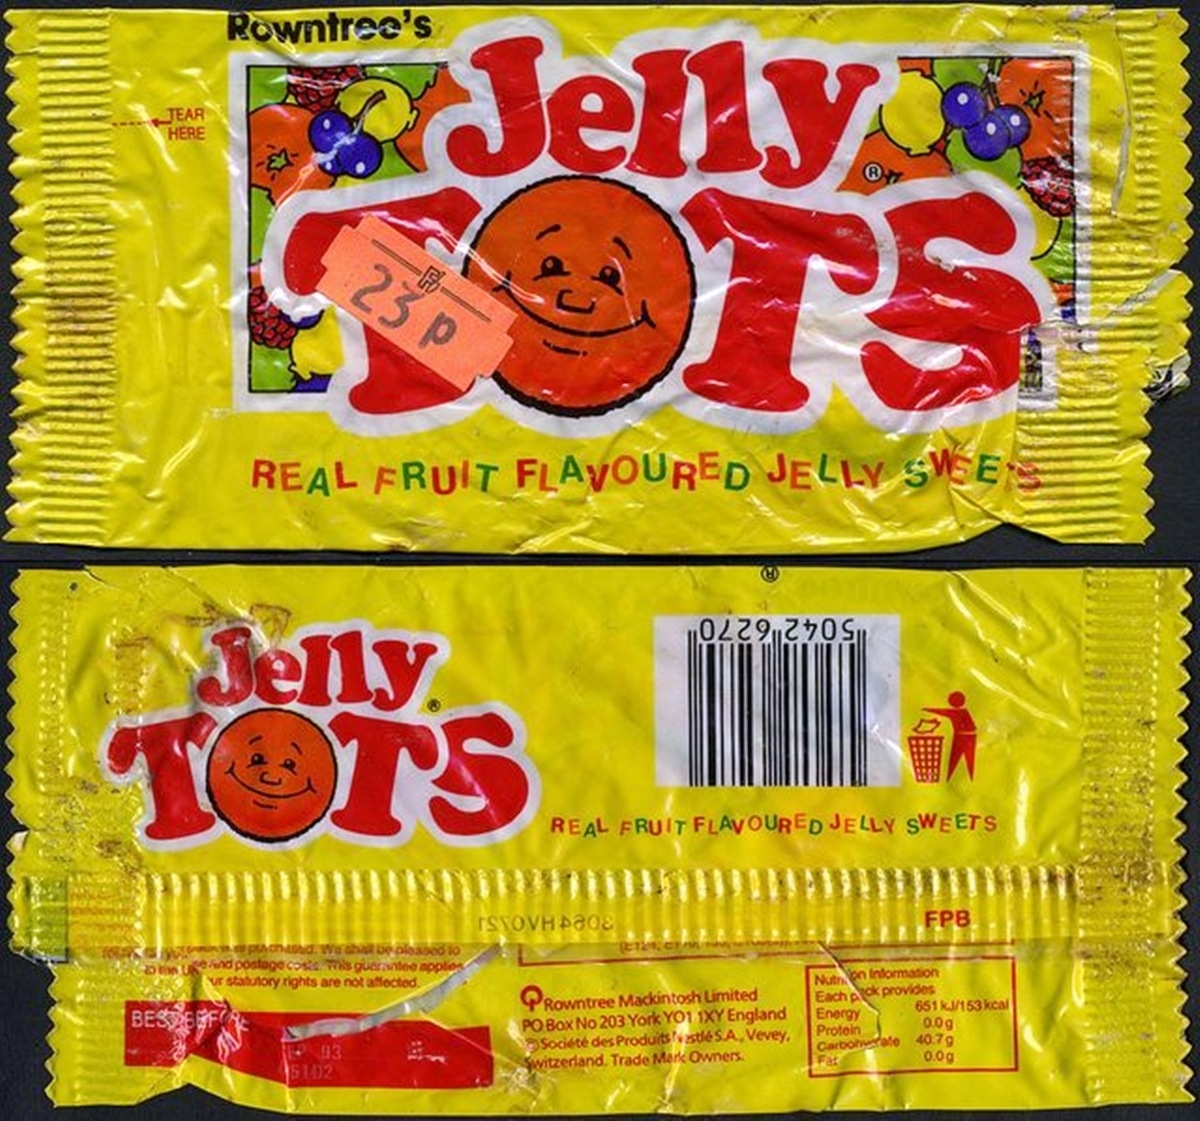 132 If You Remember At Least 10 Of These 14 Sweets Then You're A TRUE 80s Child!